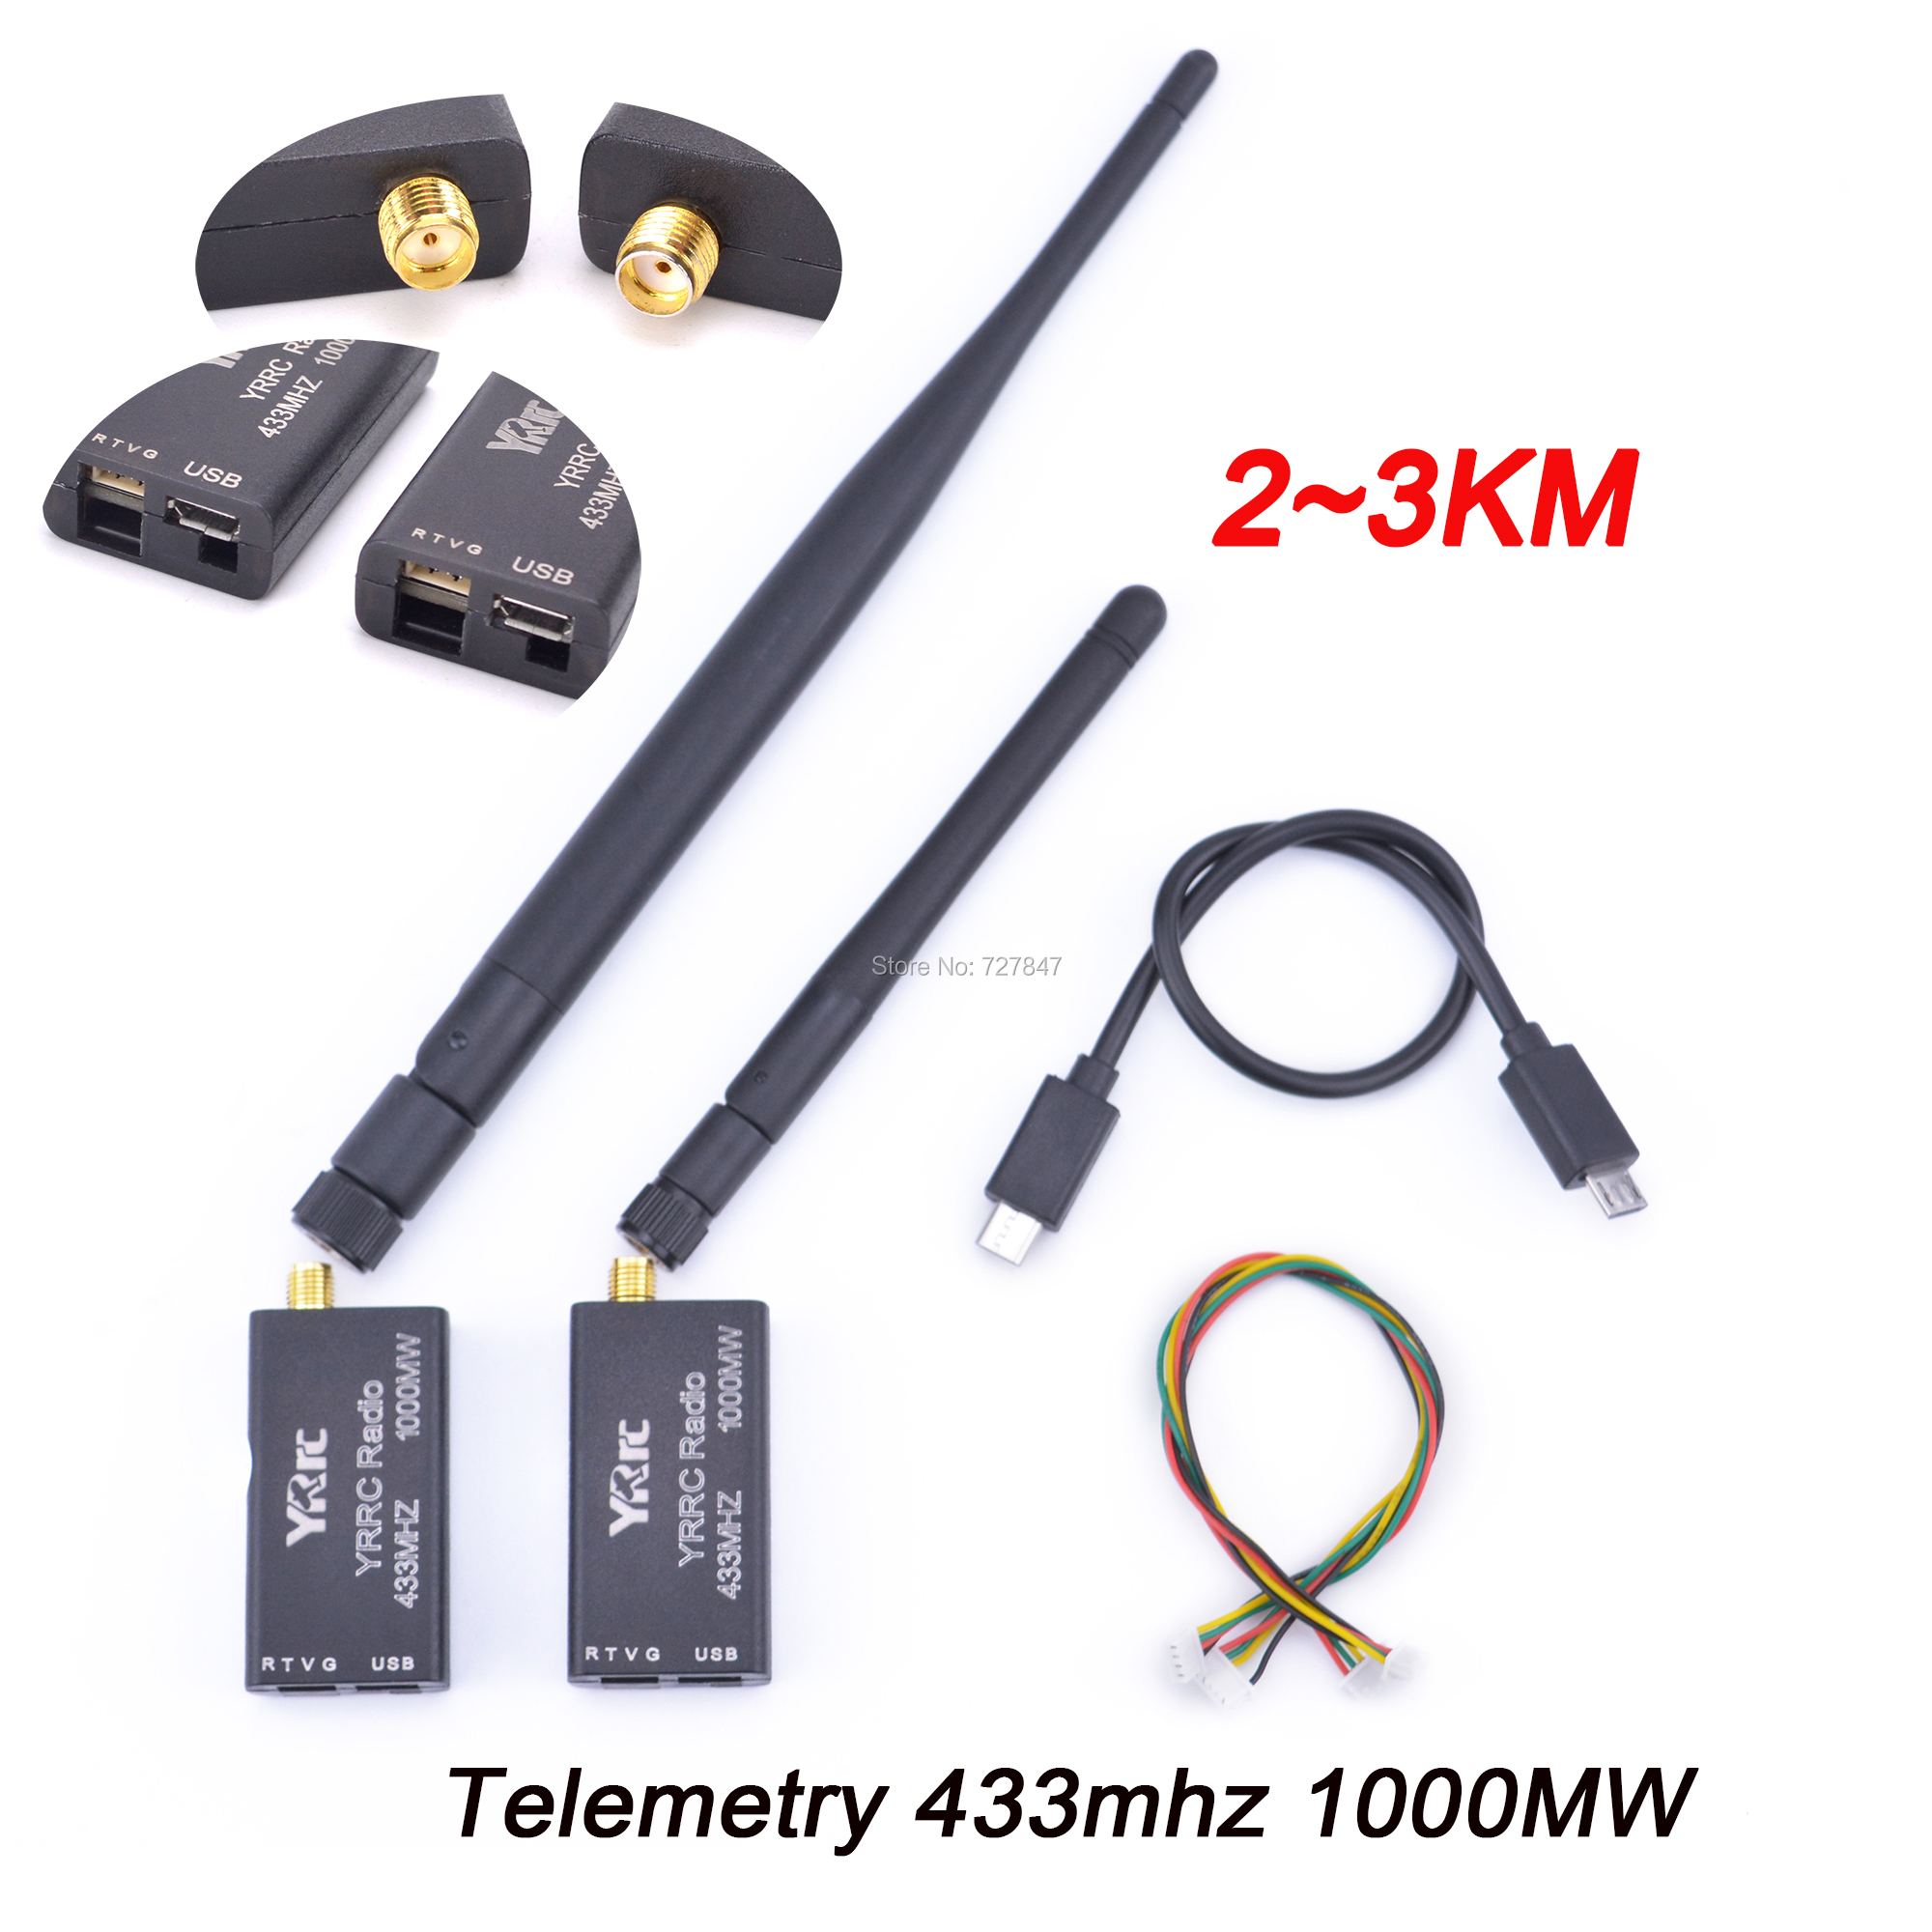 3DR Radio Telemetry 433mhz 433 1000MW 2~3KM Data Telemetry TTL & USB Port Distance For APM Pixhawk Pixhack